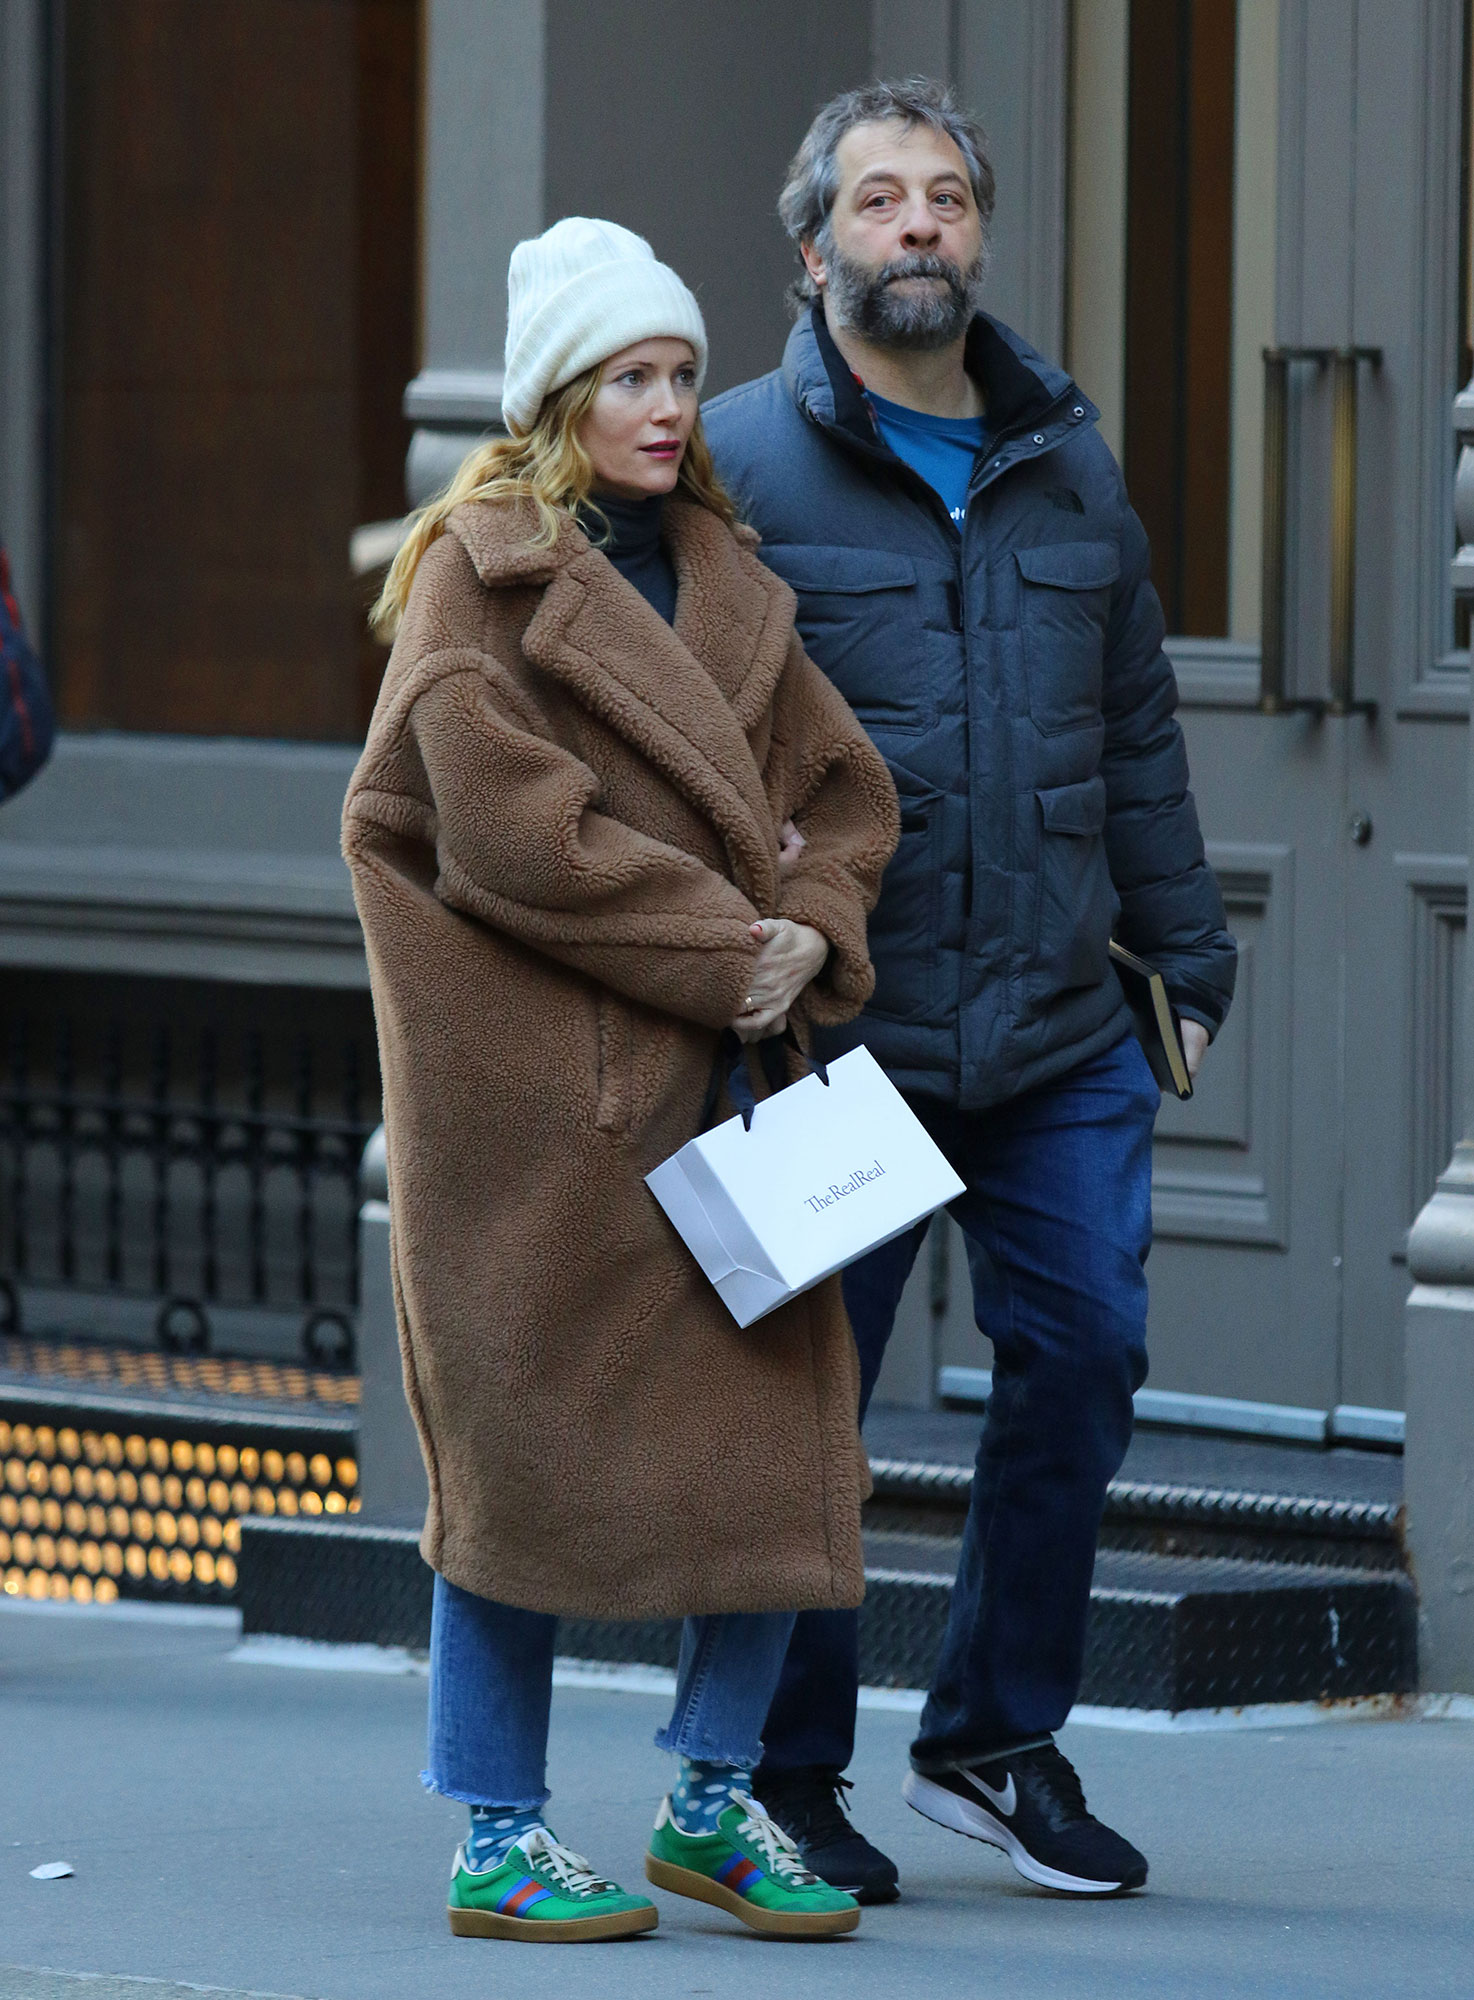 Leslie Mann and Judd Apatow shopping in New York City